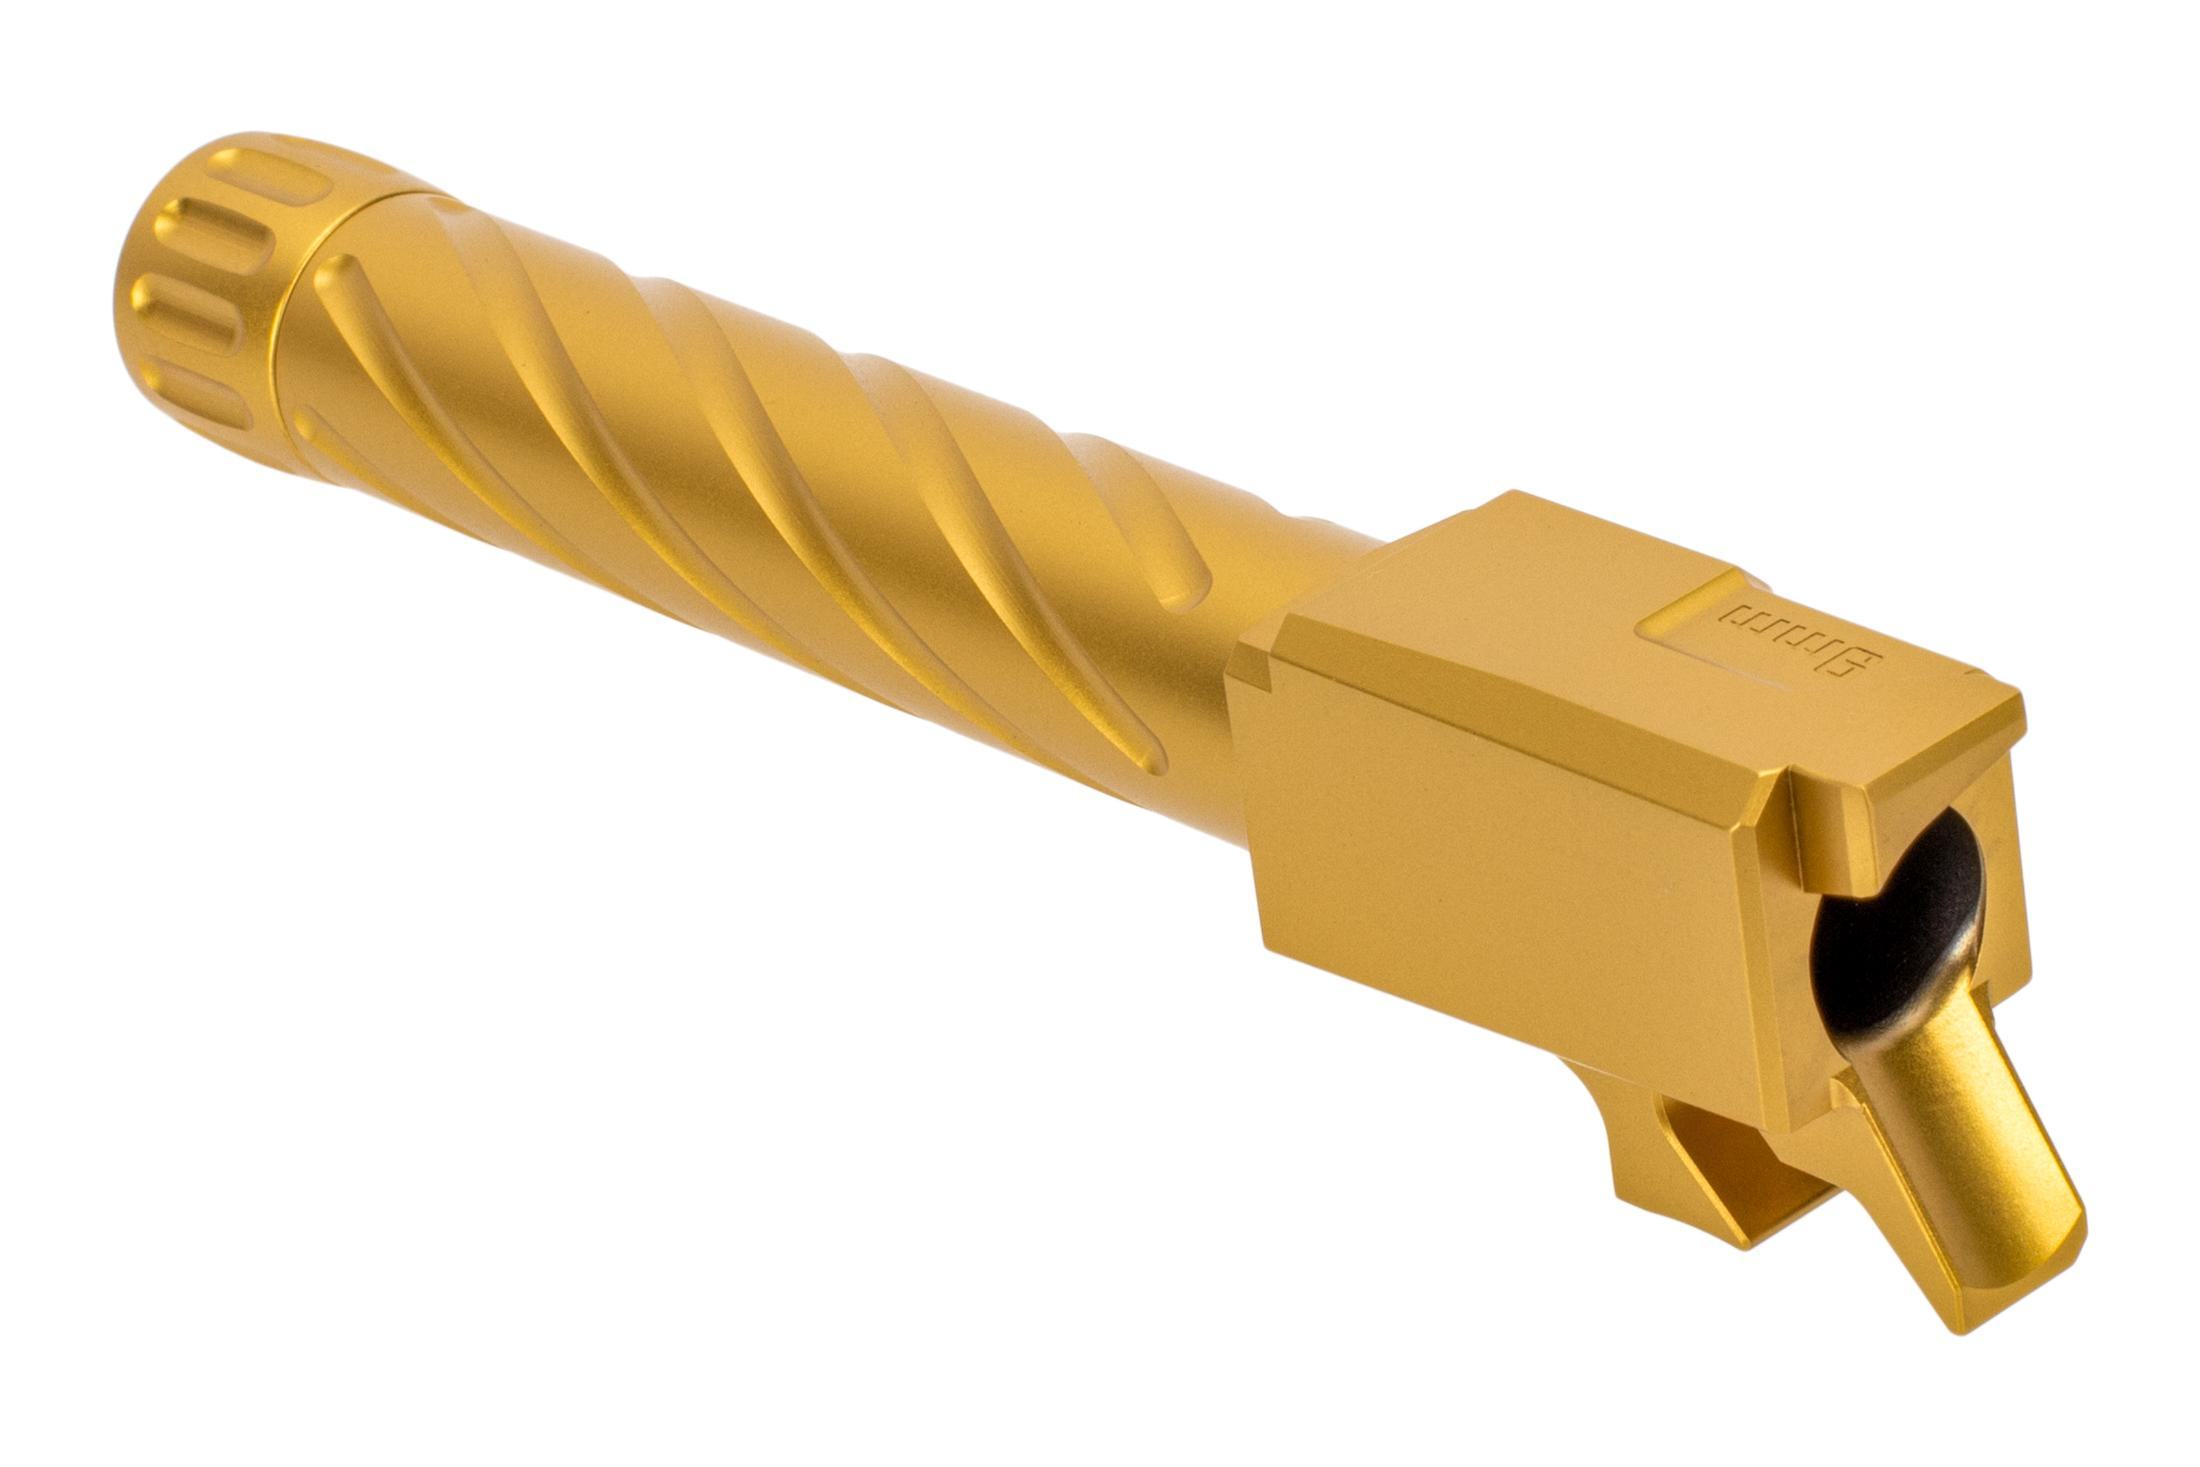 Primary Machine 9mm CZ P07 threaded and fluted barrel with Gold TiN finish and integral feed ramp